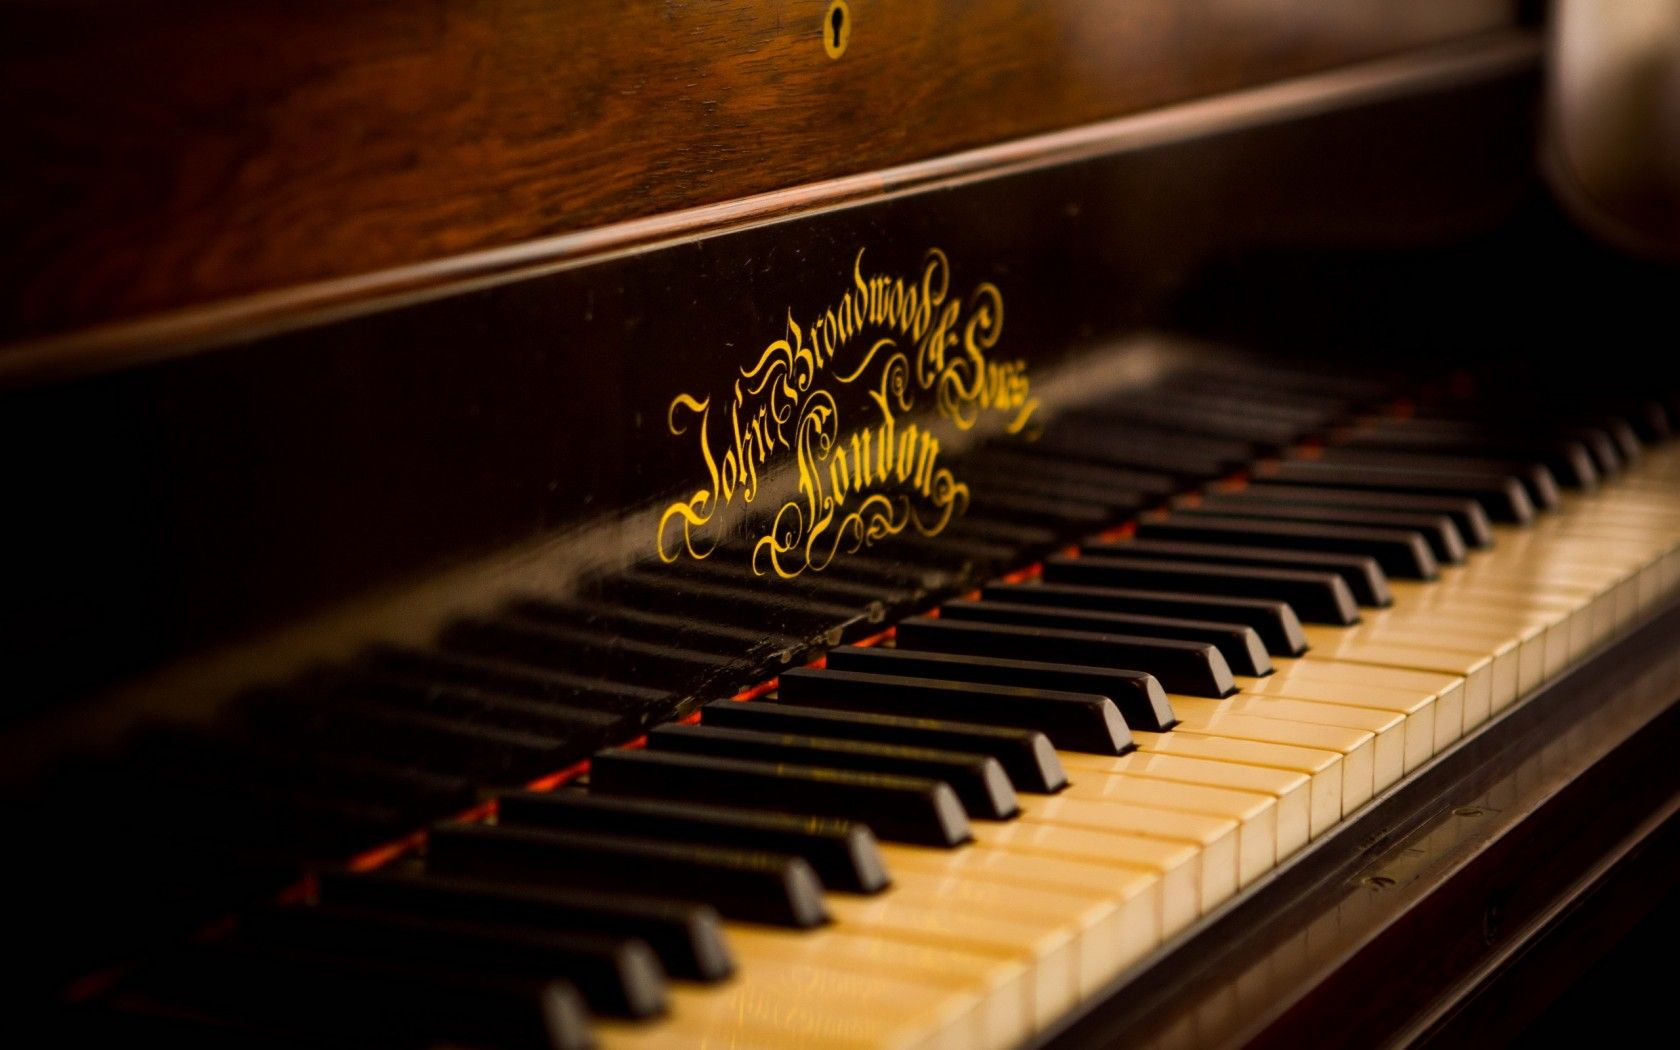 Piano Wallpapers For Desktop Piano Piano Pictures Piano Music